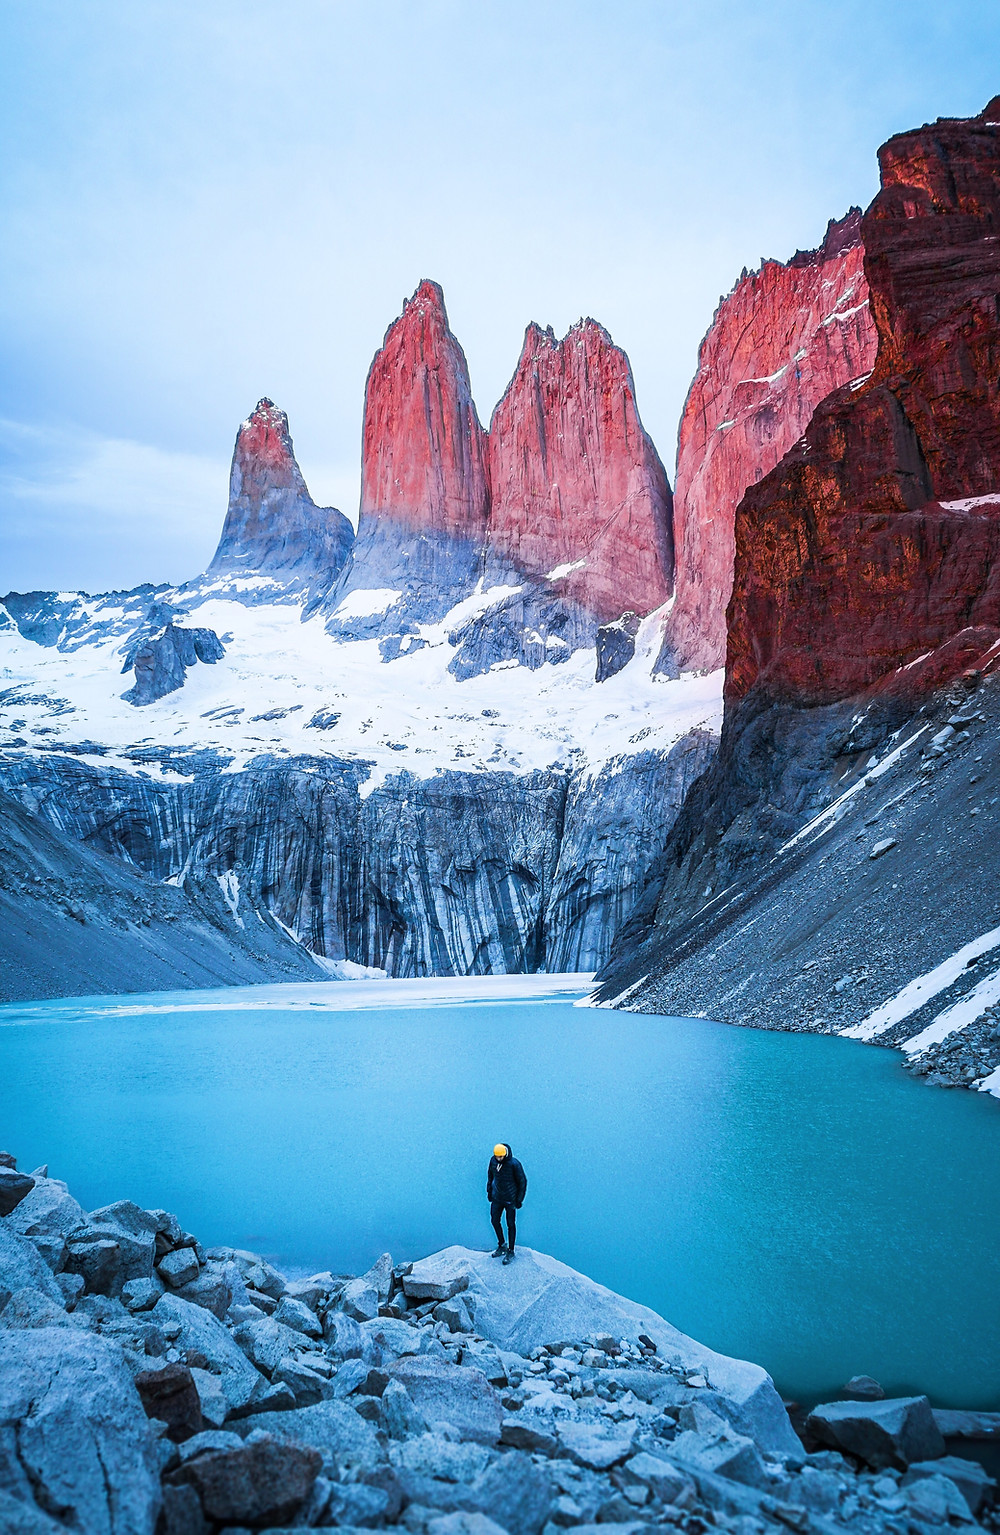 Torres del Paine mountains in Chile